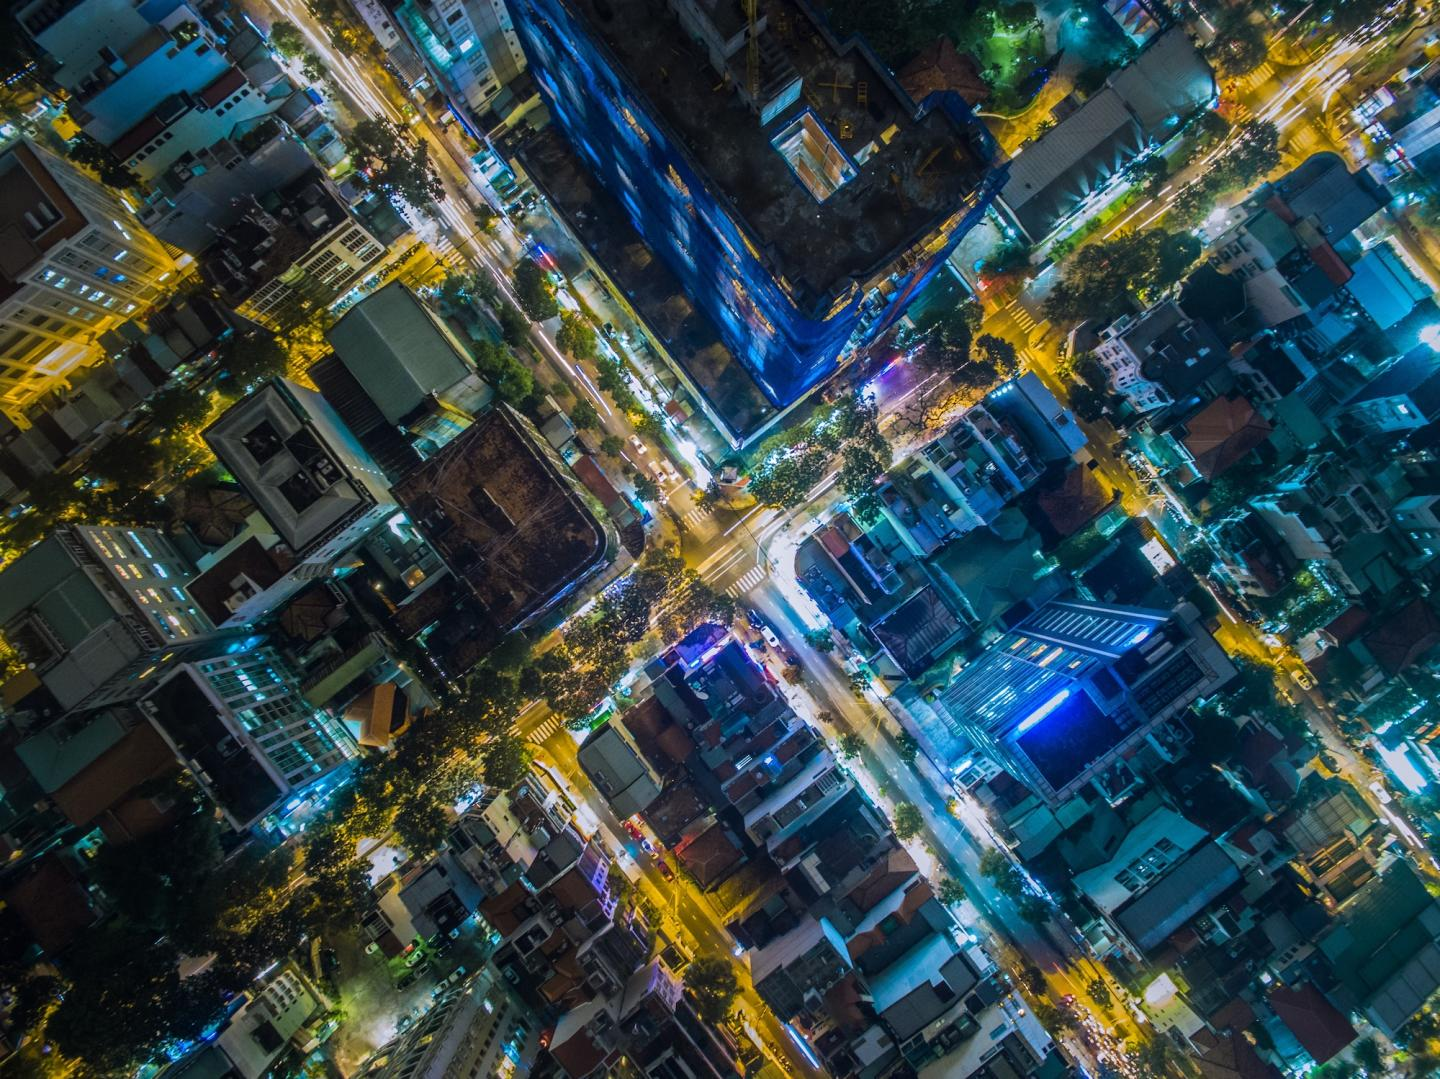 An aerial view of a city lit up at night